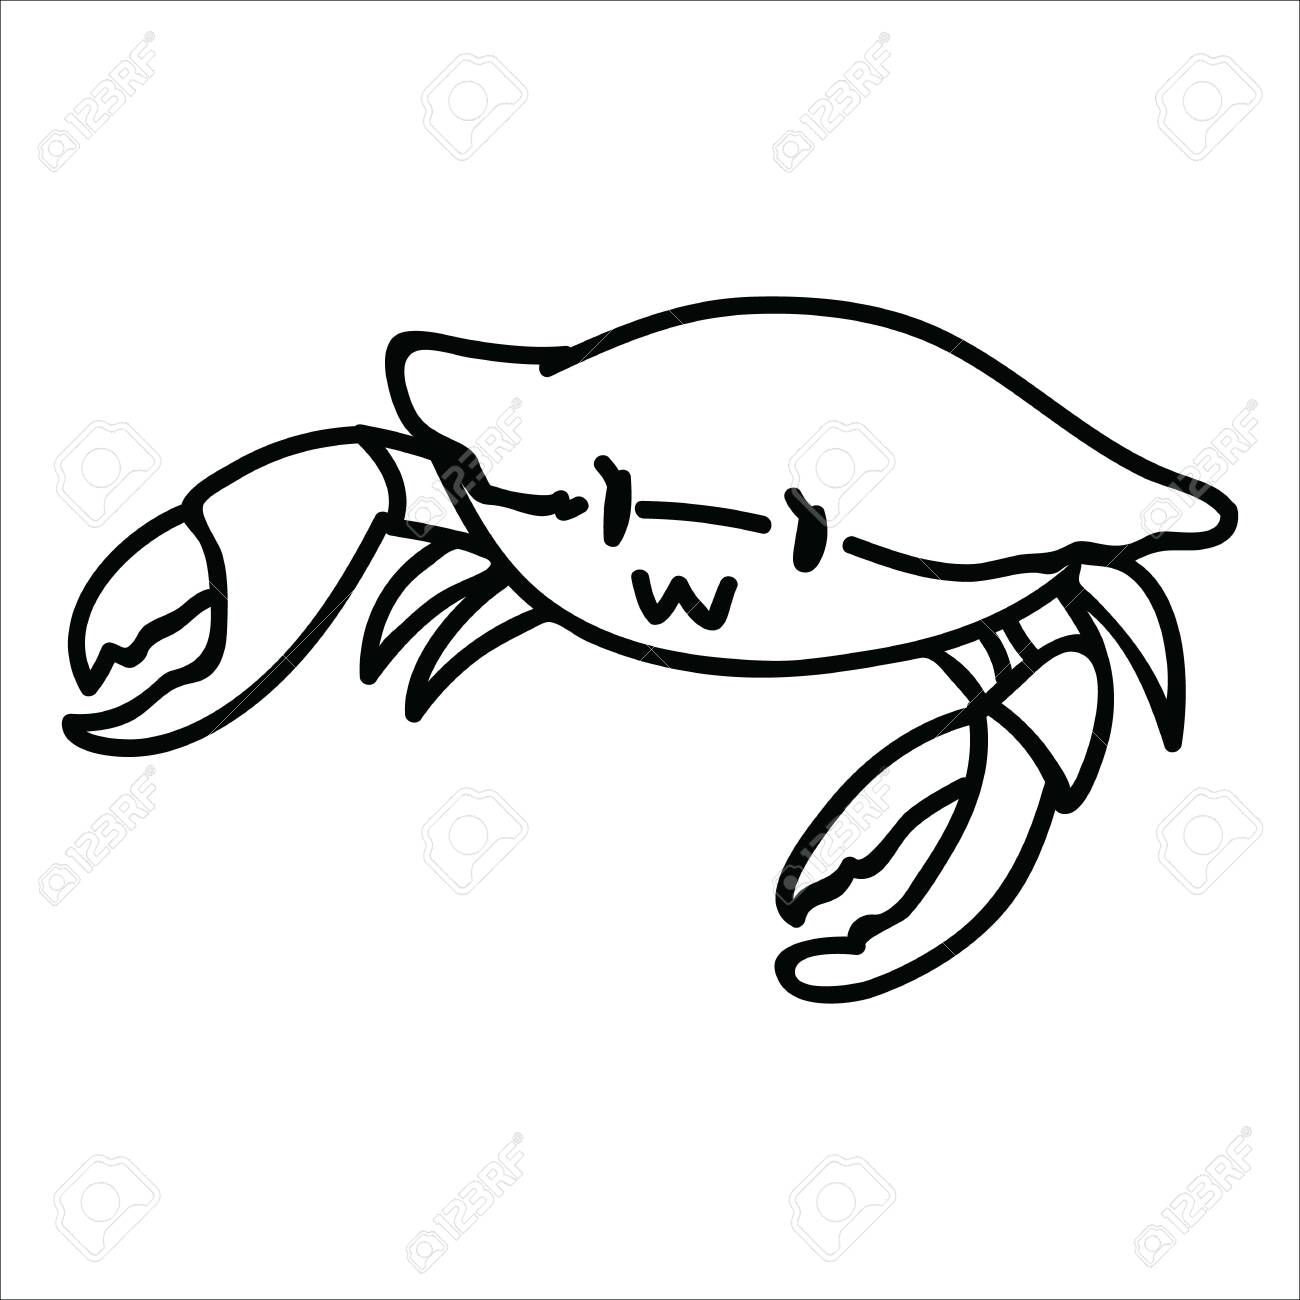 Cute Fresh Crab Lineart Cartoon Vector Illustration Motif Set Royalty Free Cliparts Vectors And Stock Illustration Image 124511895